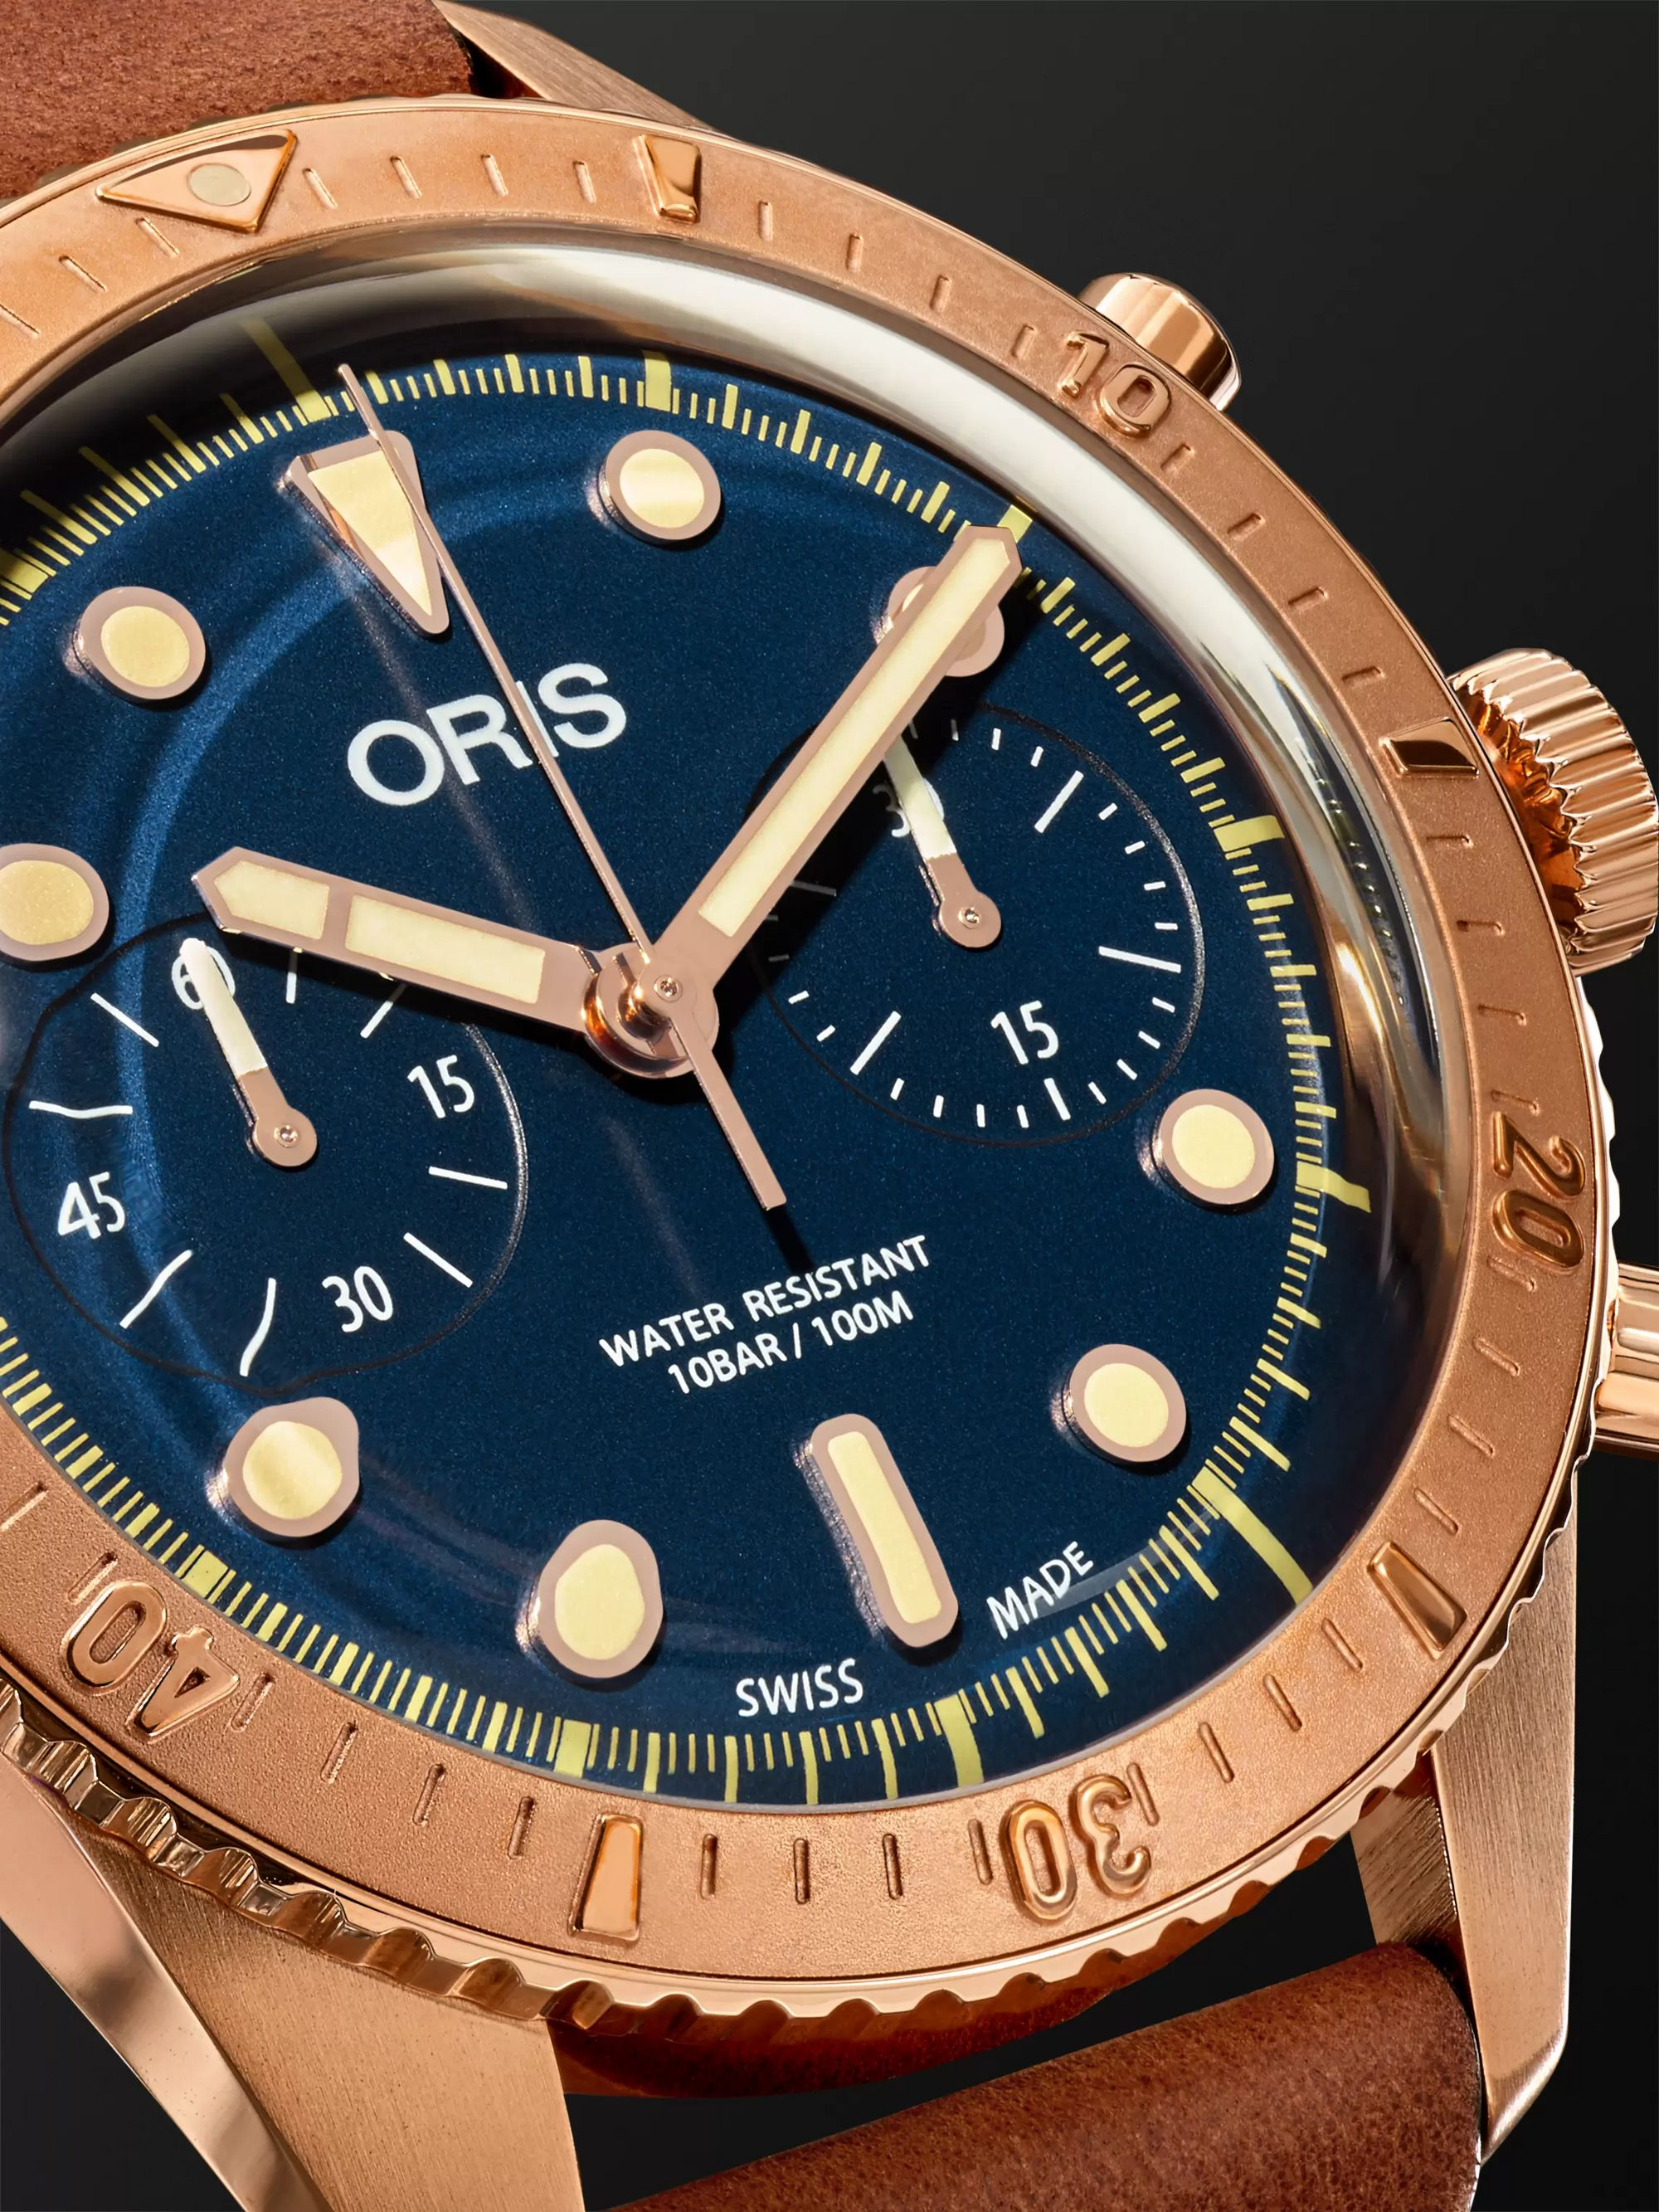 Oris Carl Brashear Chronograph 43mm Burnished Bronze and Leather Watch, Ref. No. 01 774 7744 3185